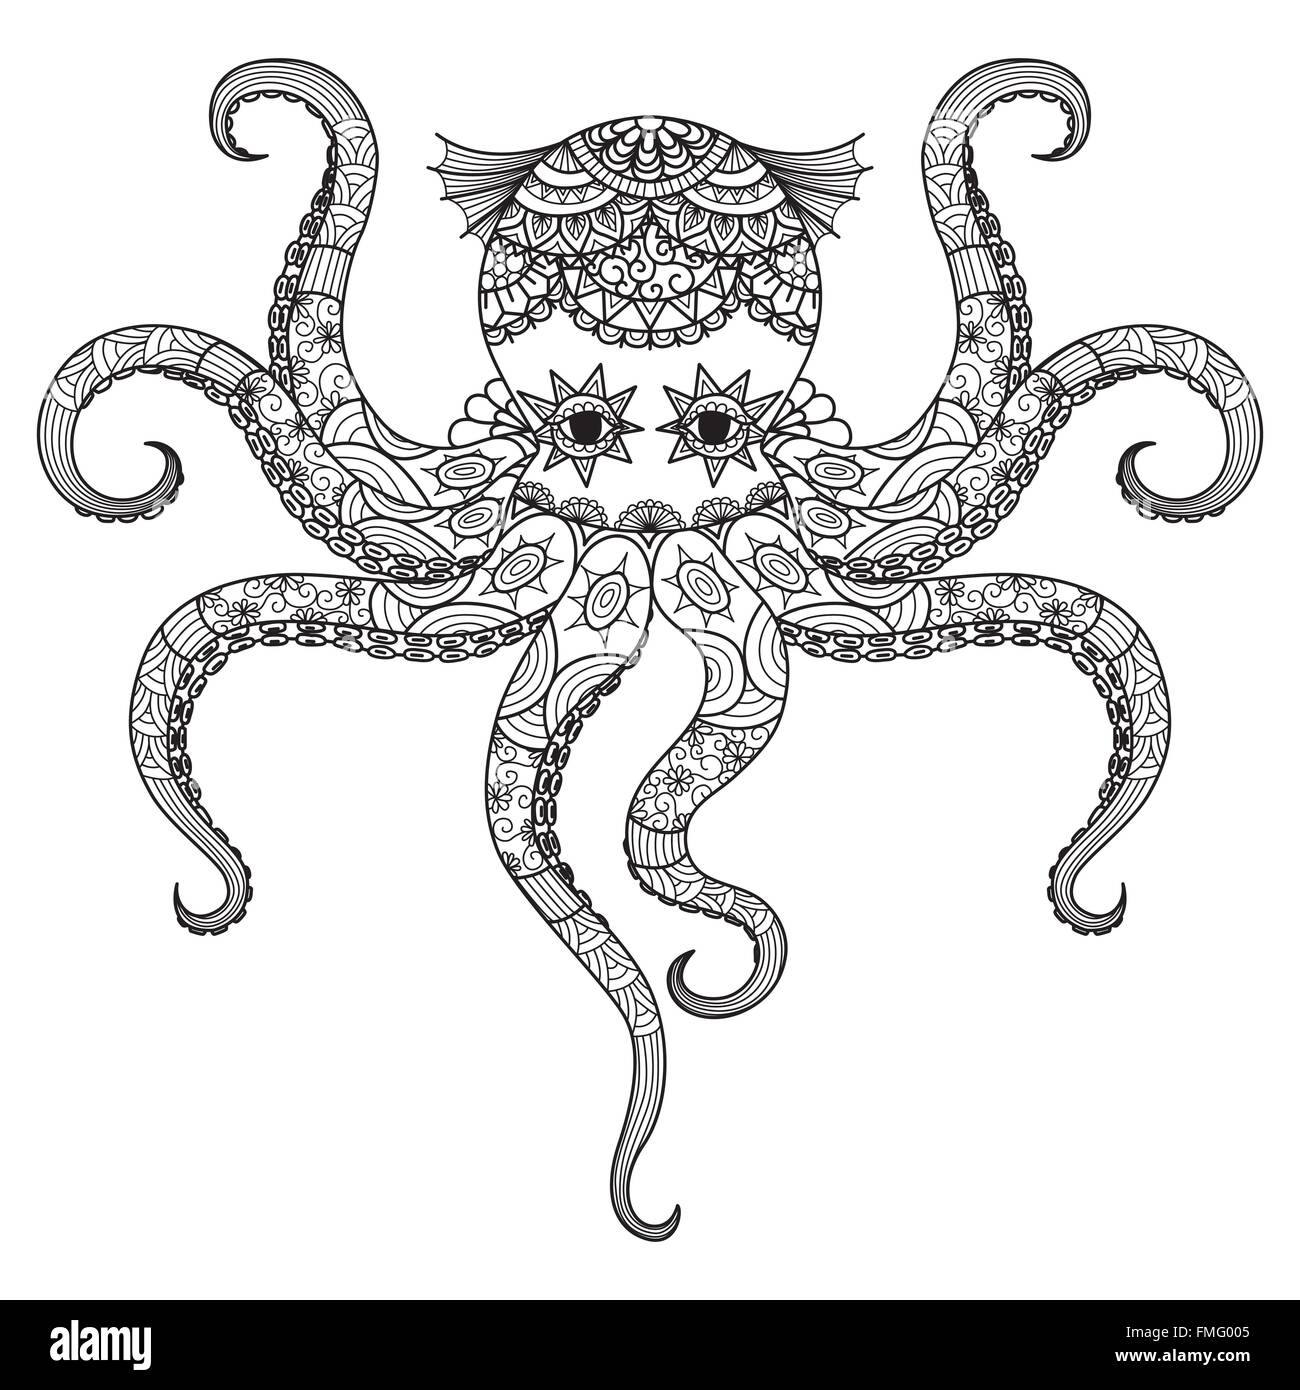 Drawing Octopus Zentangle Design For Coloring Book For Adult